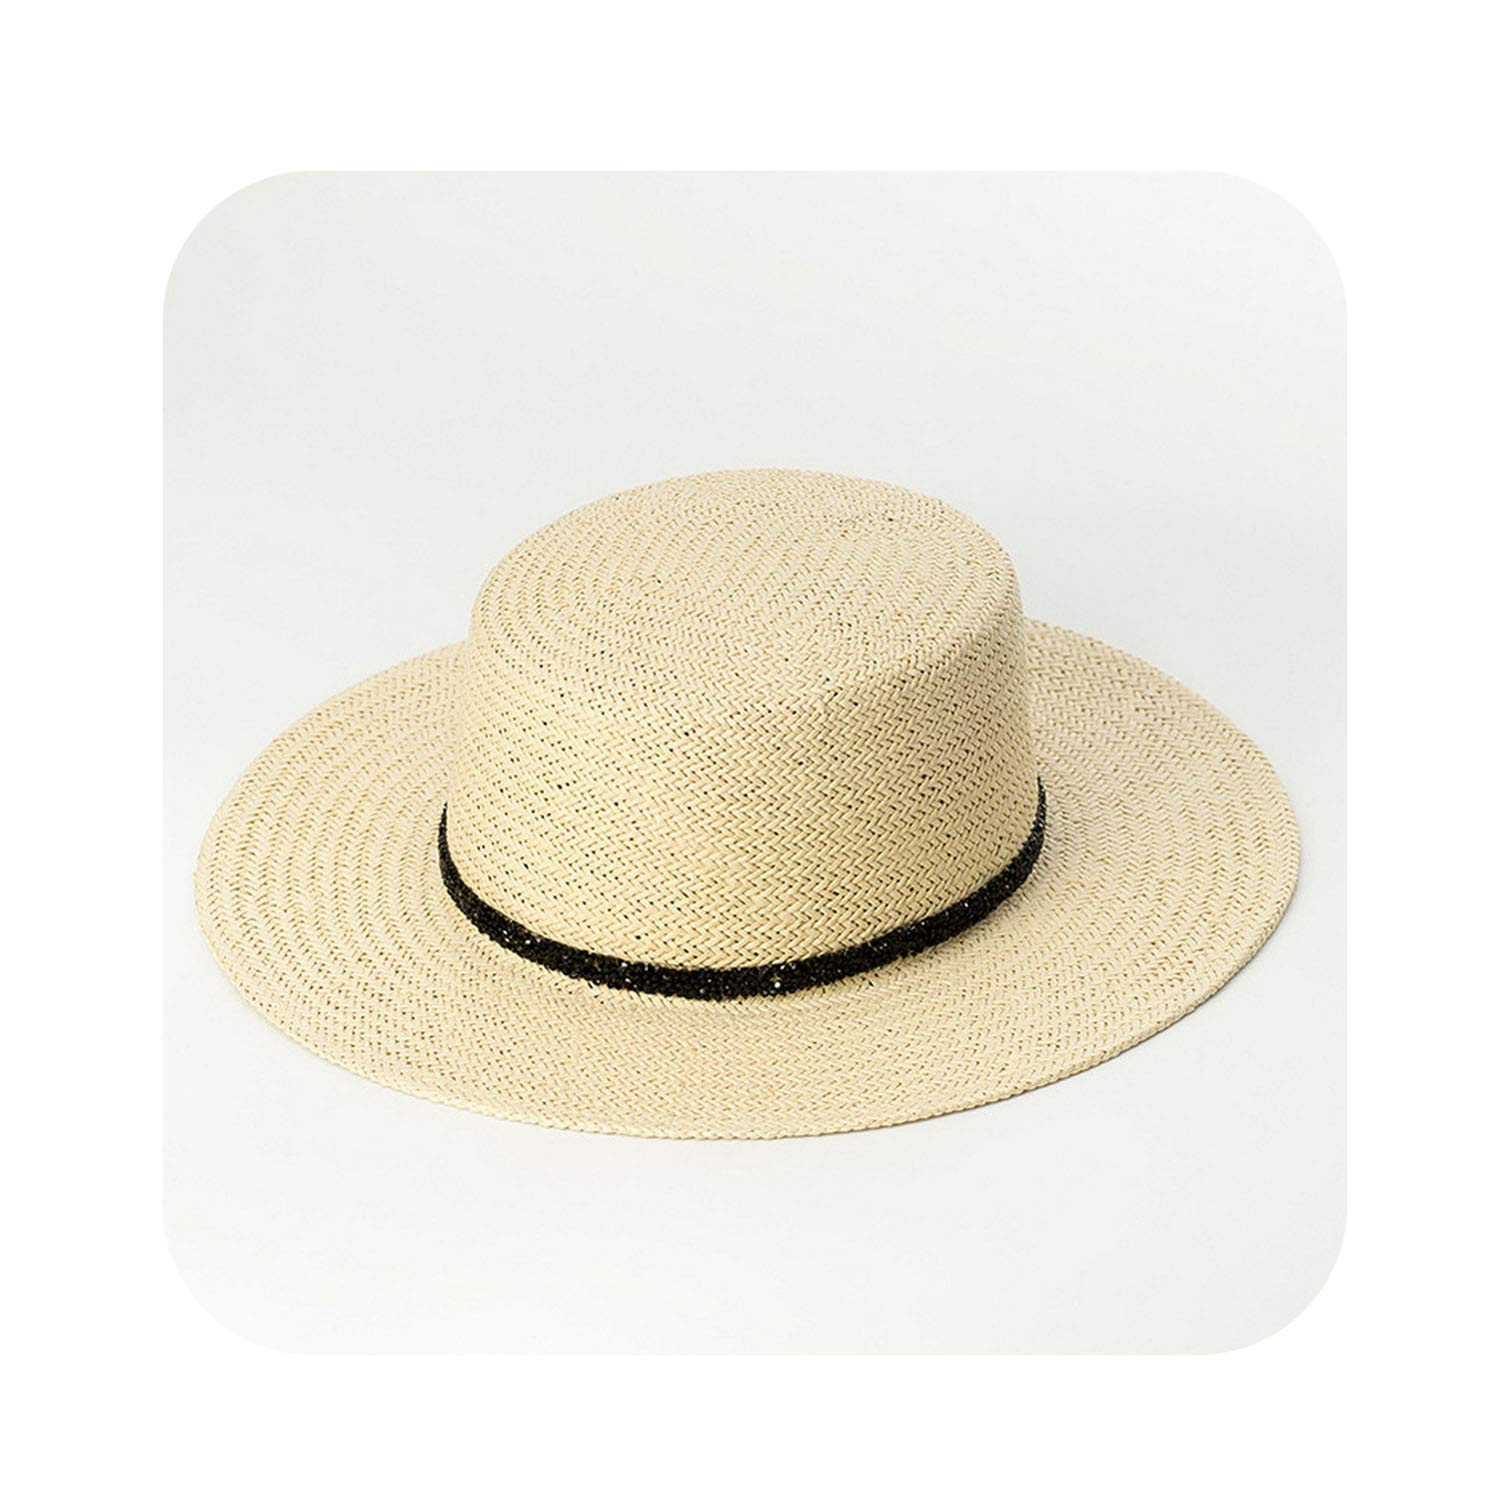 004 Natural Boater Hat Women Fashion Summer Sun Hat Paper Straw Beach Hats for Ladies 681014